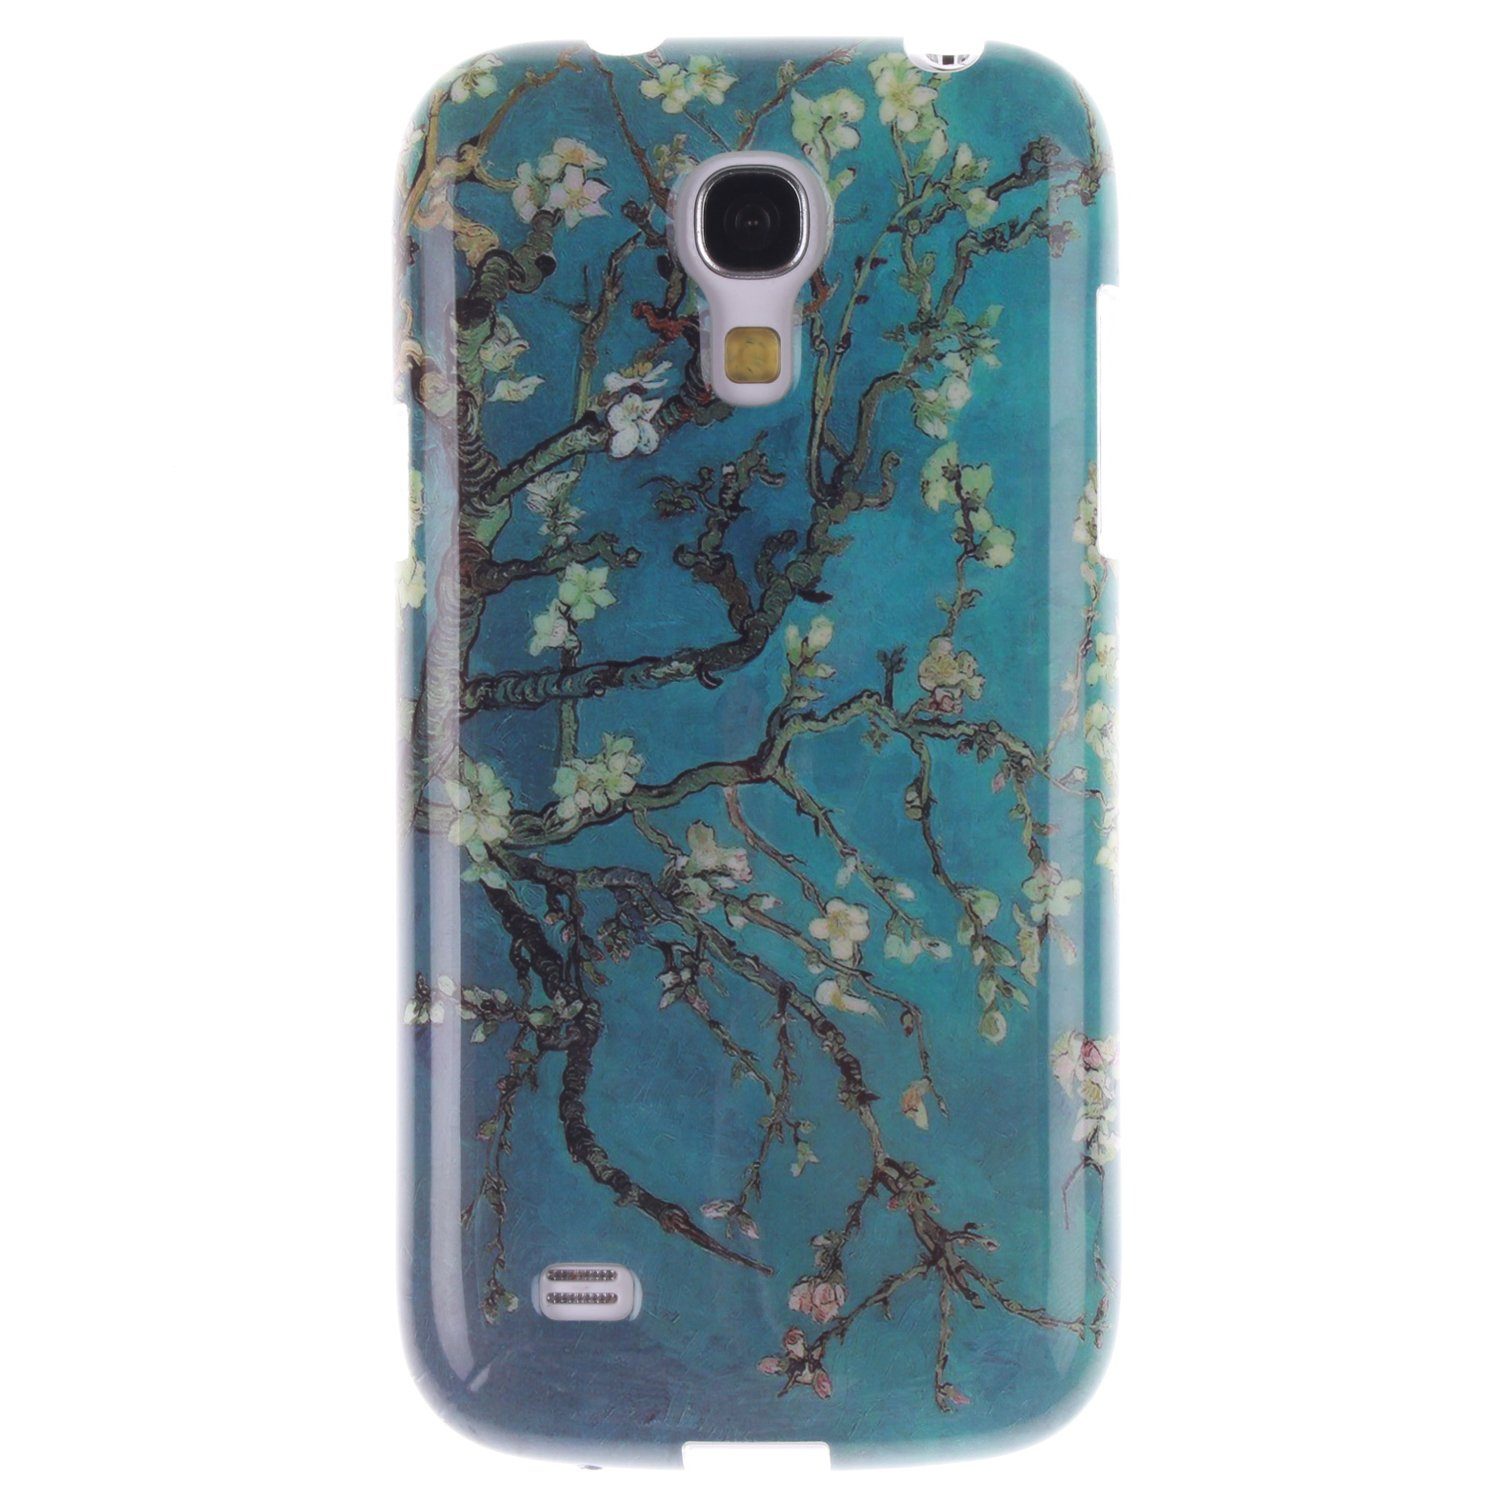 Coque Samsung Galaxy S4 mini /i9190, Coffeetreehouse Housse Etui Protection Full Silicone Souple Ultra Mince Fine Slim pour Samsung Galaxy S4 mini /i9190, Samsung Galaxy S4 mini /i9190 Étui en TPU silicone - Bleu Plum